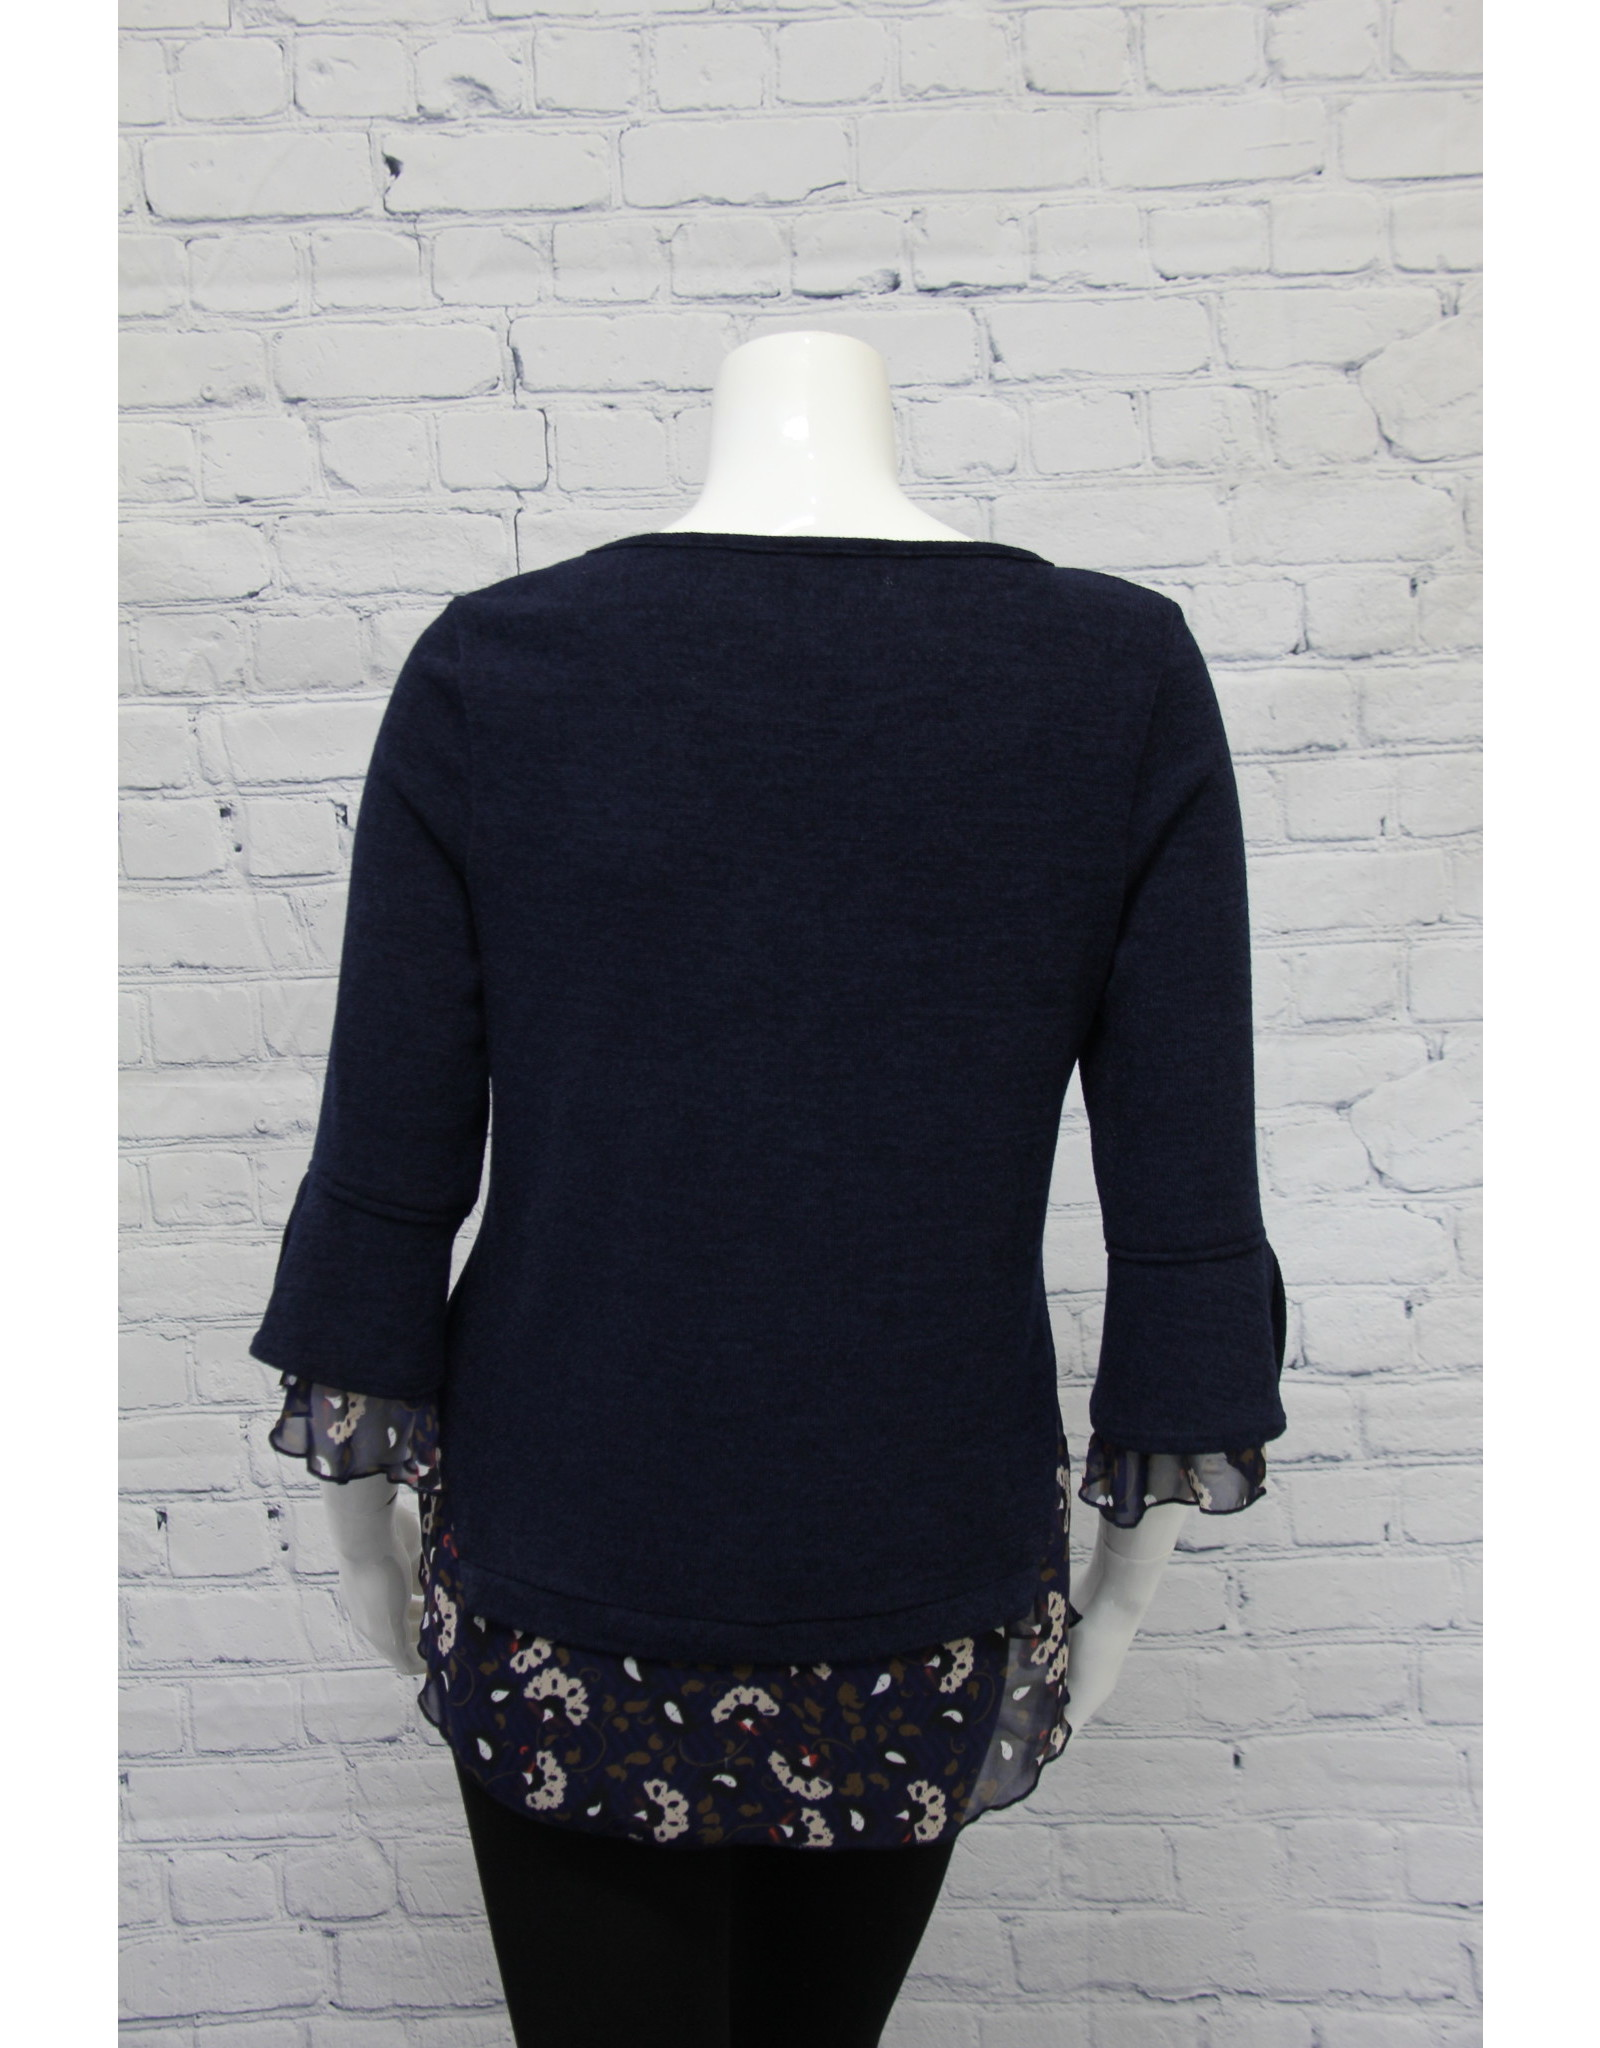 Bali Navy Top with Floral Trim